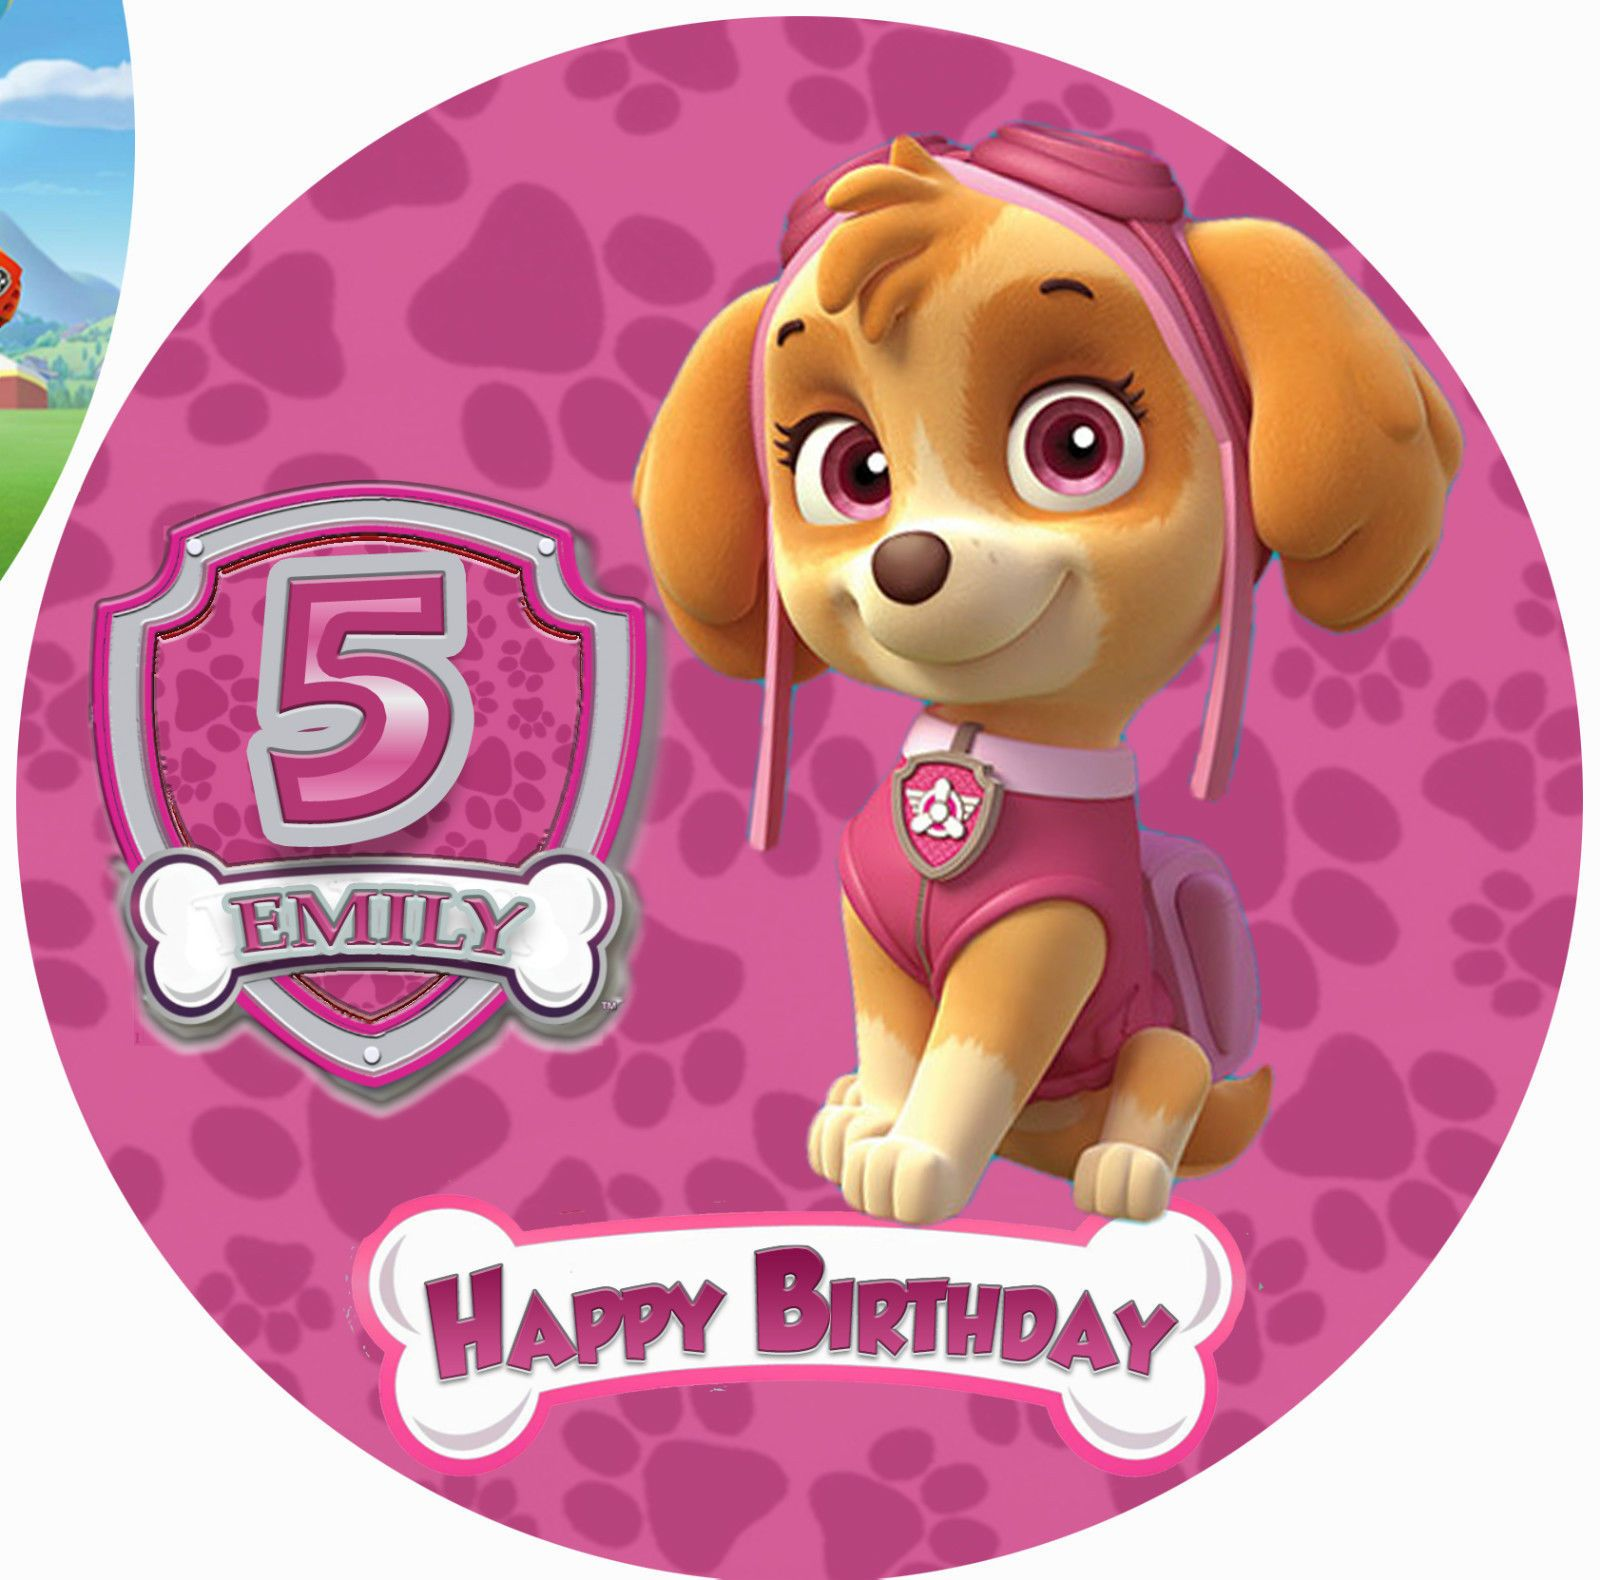 $17 5 AUD  Skye Paw Patrol Personalised Edible Image Real Icing Cake Topper Mutliple Size ebay Home & Garden - Skye paw patrol, Paw patrol, Paw patrol party, Paw, Edible images, Topper - $17 5 AUD  Skye Paw Patrol Personalised Edible Image Real Icing Cake Topper Mutliple Size ebay Home & Garden